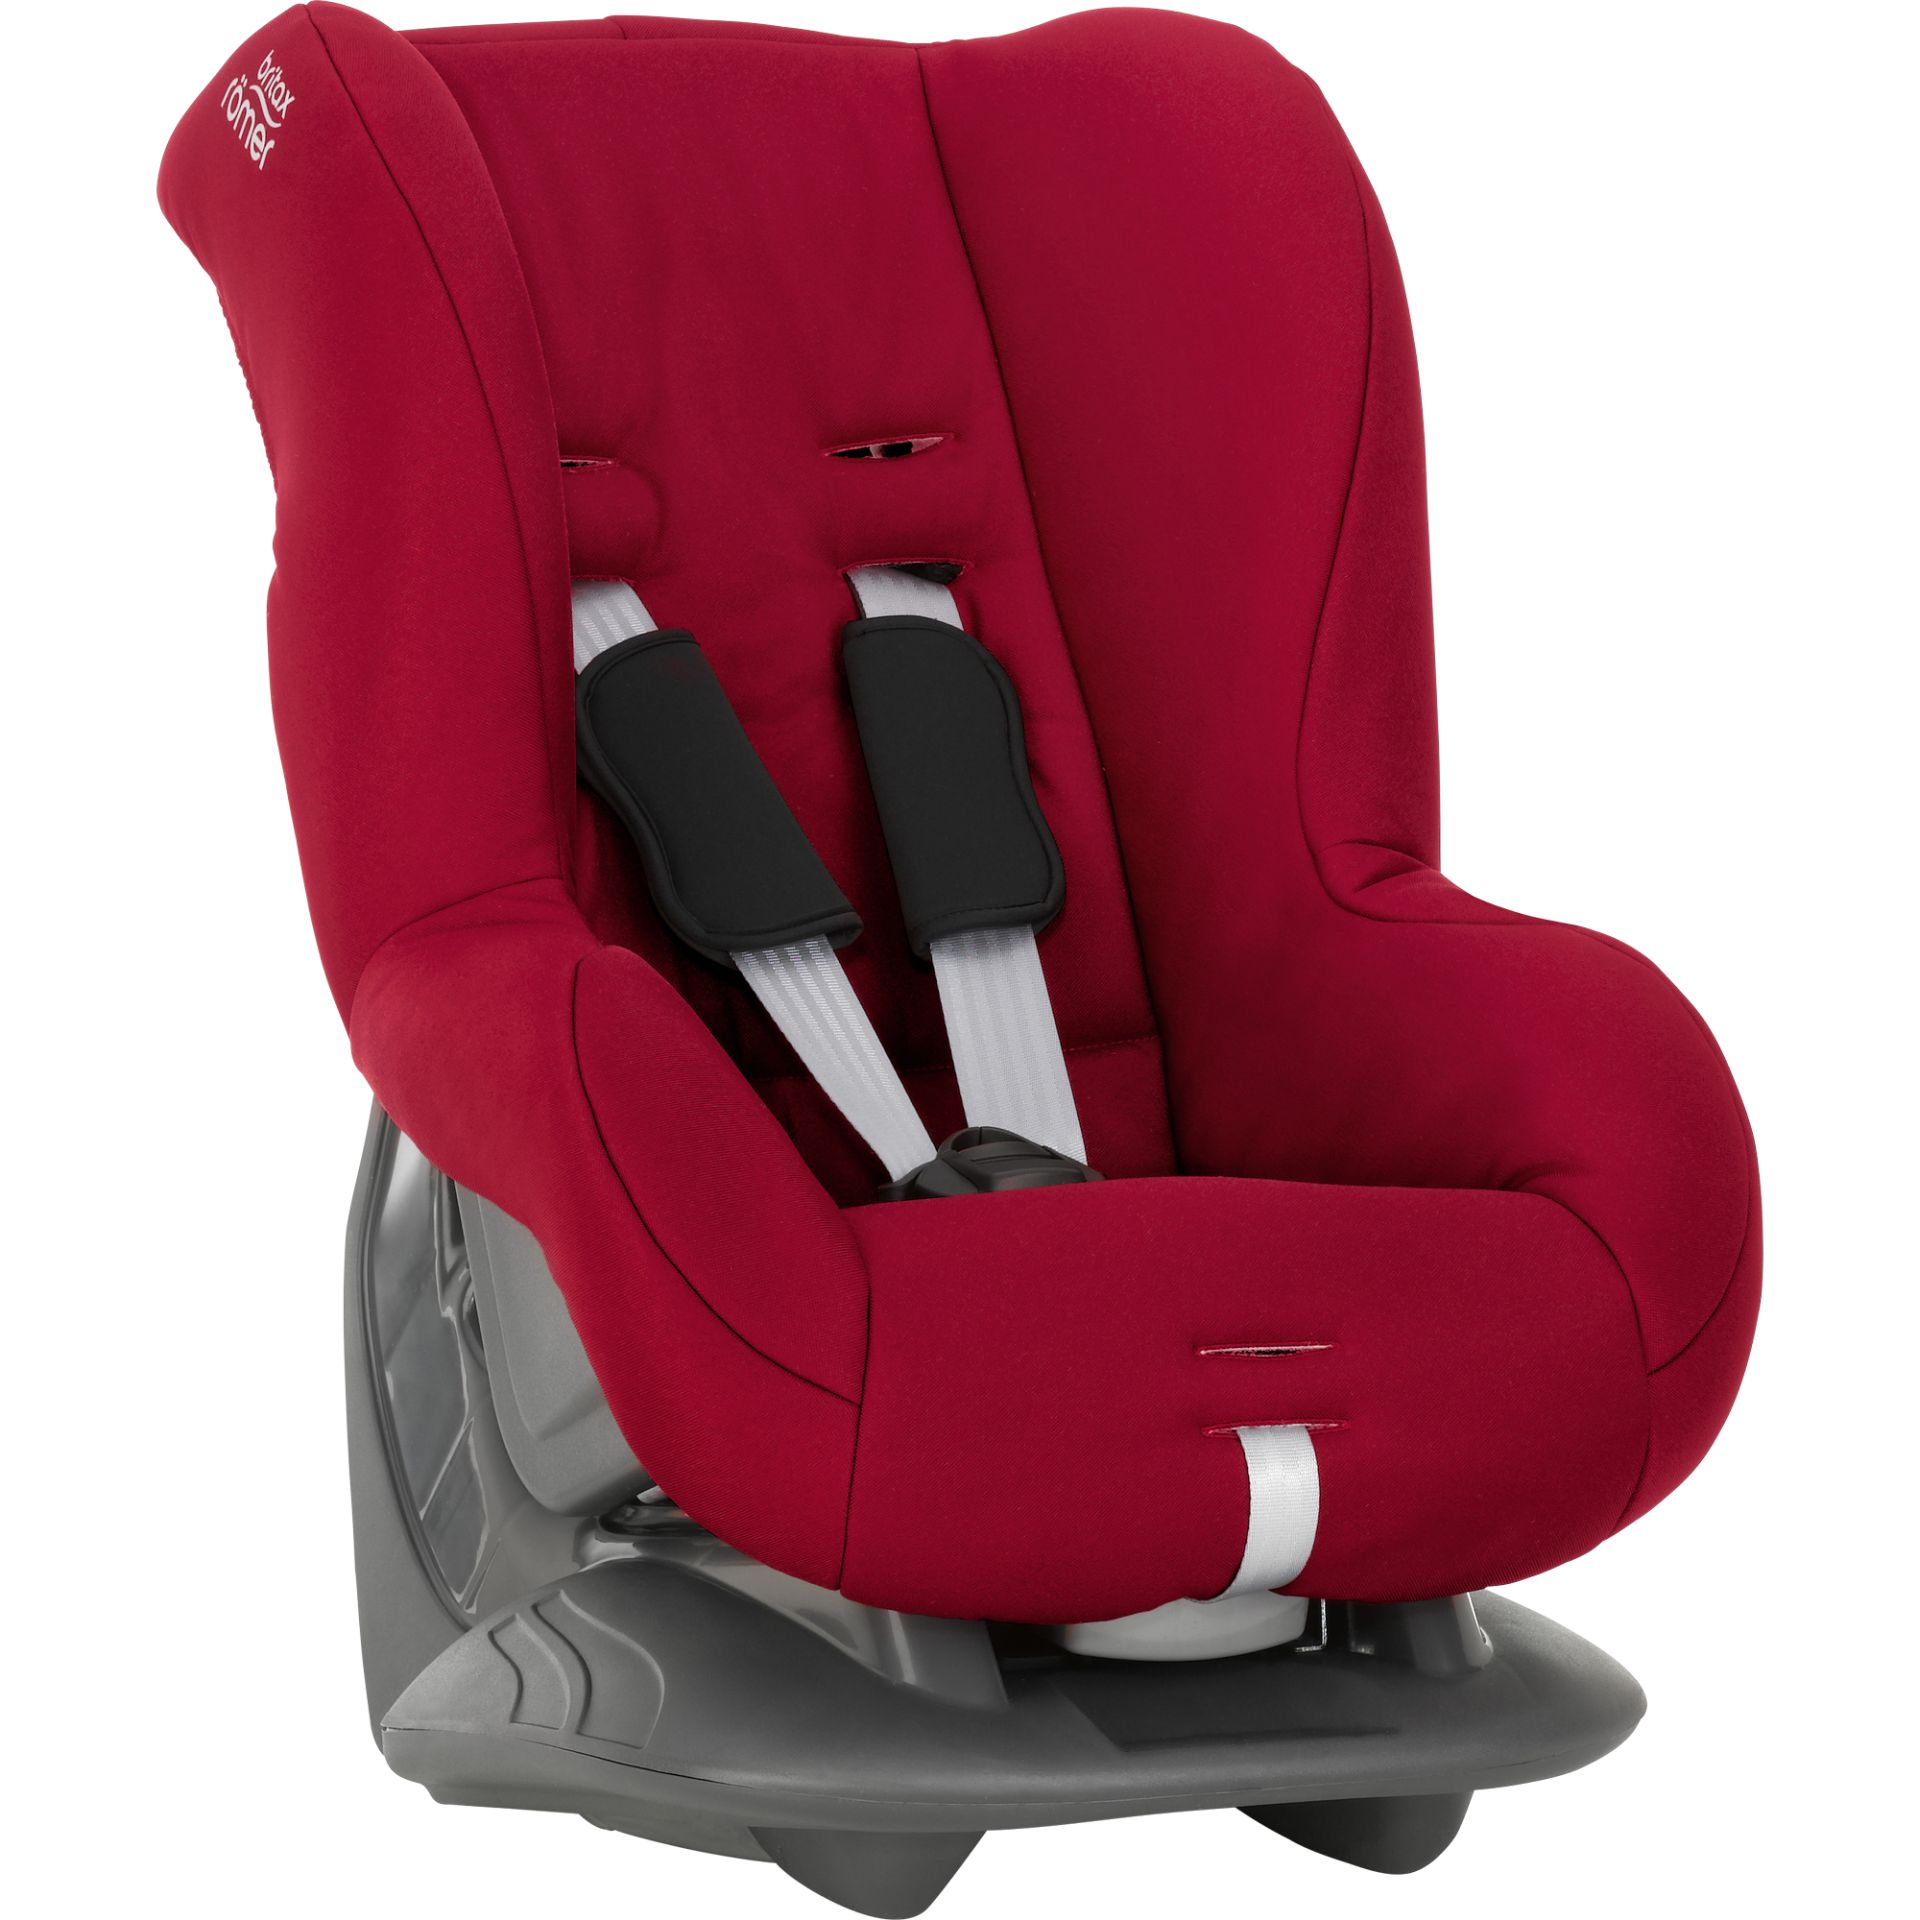 Red Chicco Car Seat >> Britax Römer Car Seat Eclipse 2018 Flame Red - Buy at kidsroom | Car Seats